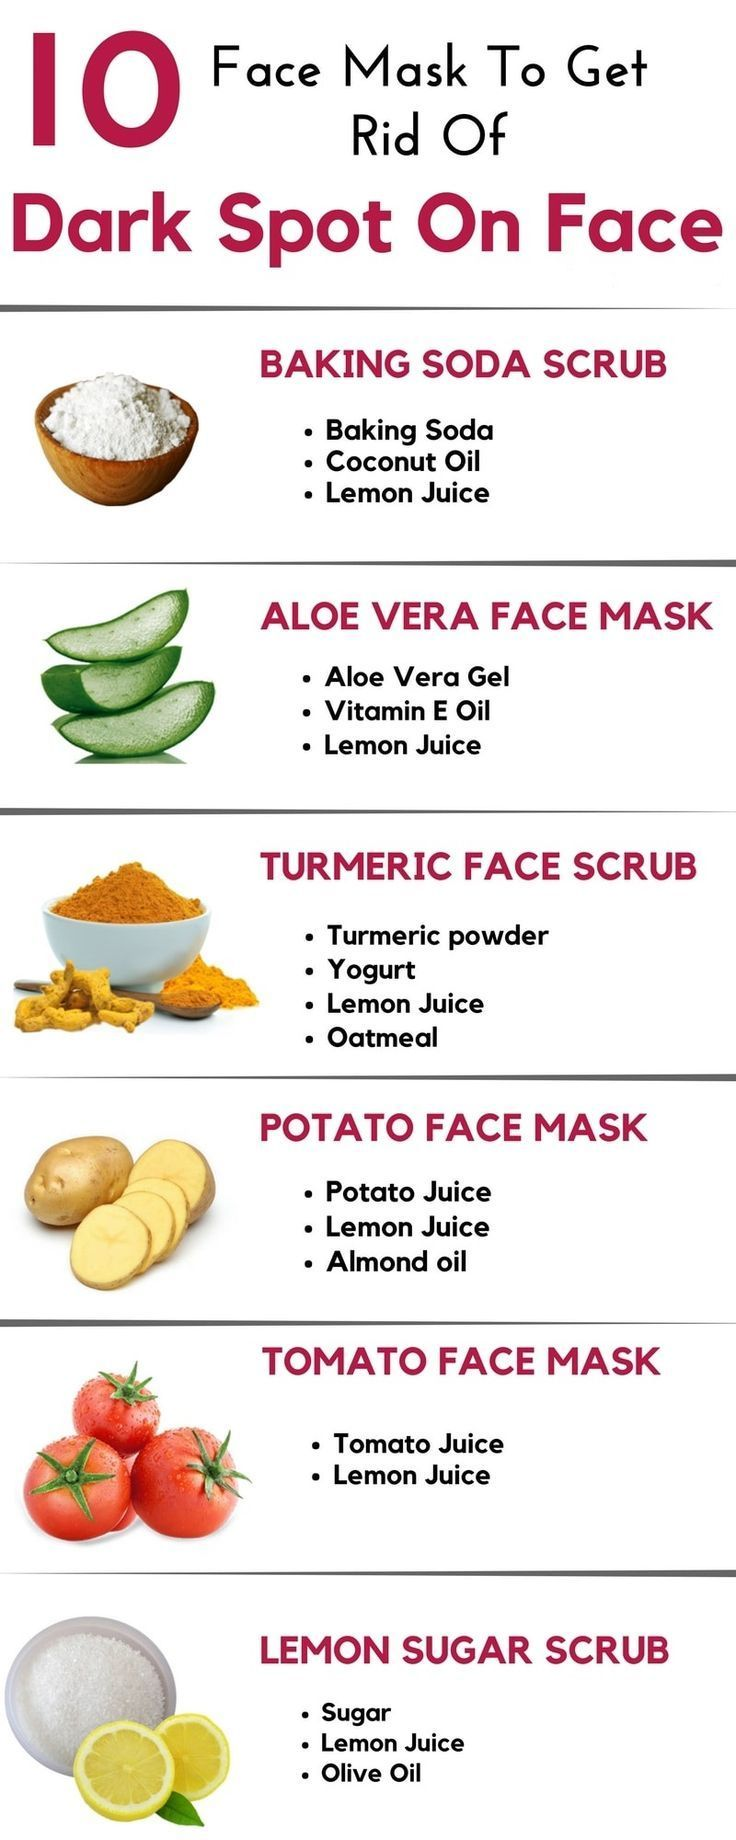 10 Home Remedies To Remove Dark Spots Natural Acne Scar Mask How To Remove Acne Holes On Face Naturally How In 2020 Spots On Face Potato Face Dark Spots On Face